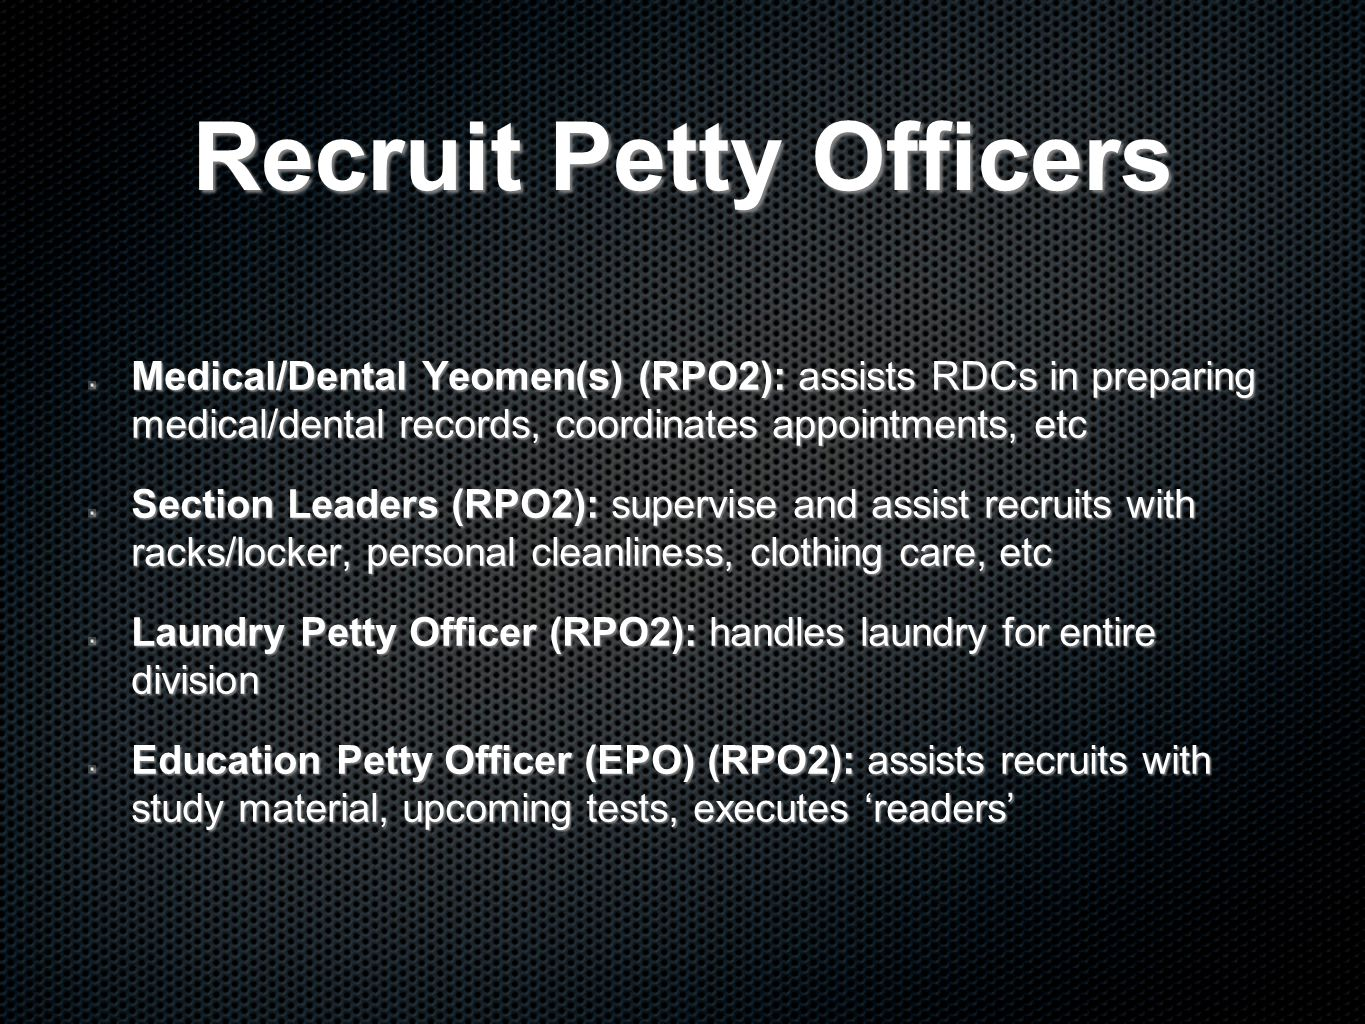 Recruit Petty Officers Medical/Dental Yeomen(s) (RPO2): assists RDCs in preparing medical/dental records, coordinates appointments, etc Section Leaders (RPO2): supervise and assist recruits with racks/locker, personal cleanliness, clothing care, etc Laundry Petty Officer (RPO2): handles laundry for entire division Education Petty Officer (EPO) (RPO2): assists recruits with study material, upcoming tests, executes 'readers'